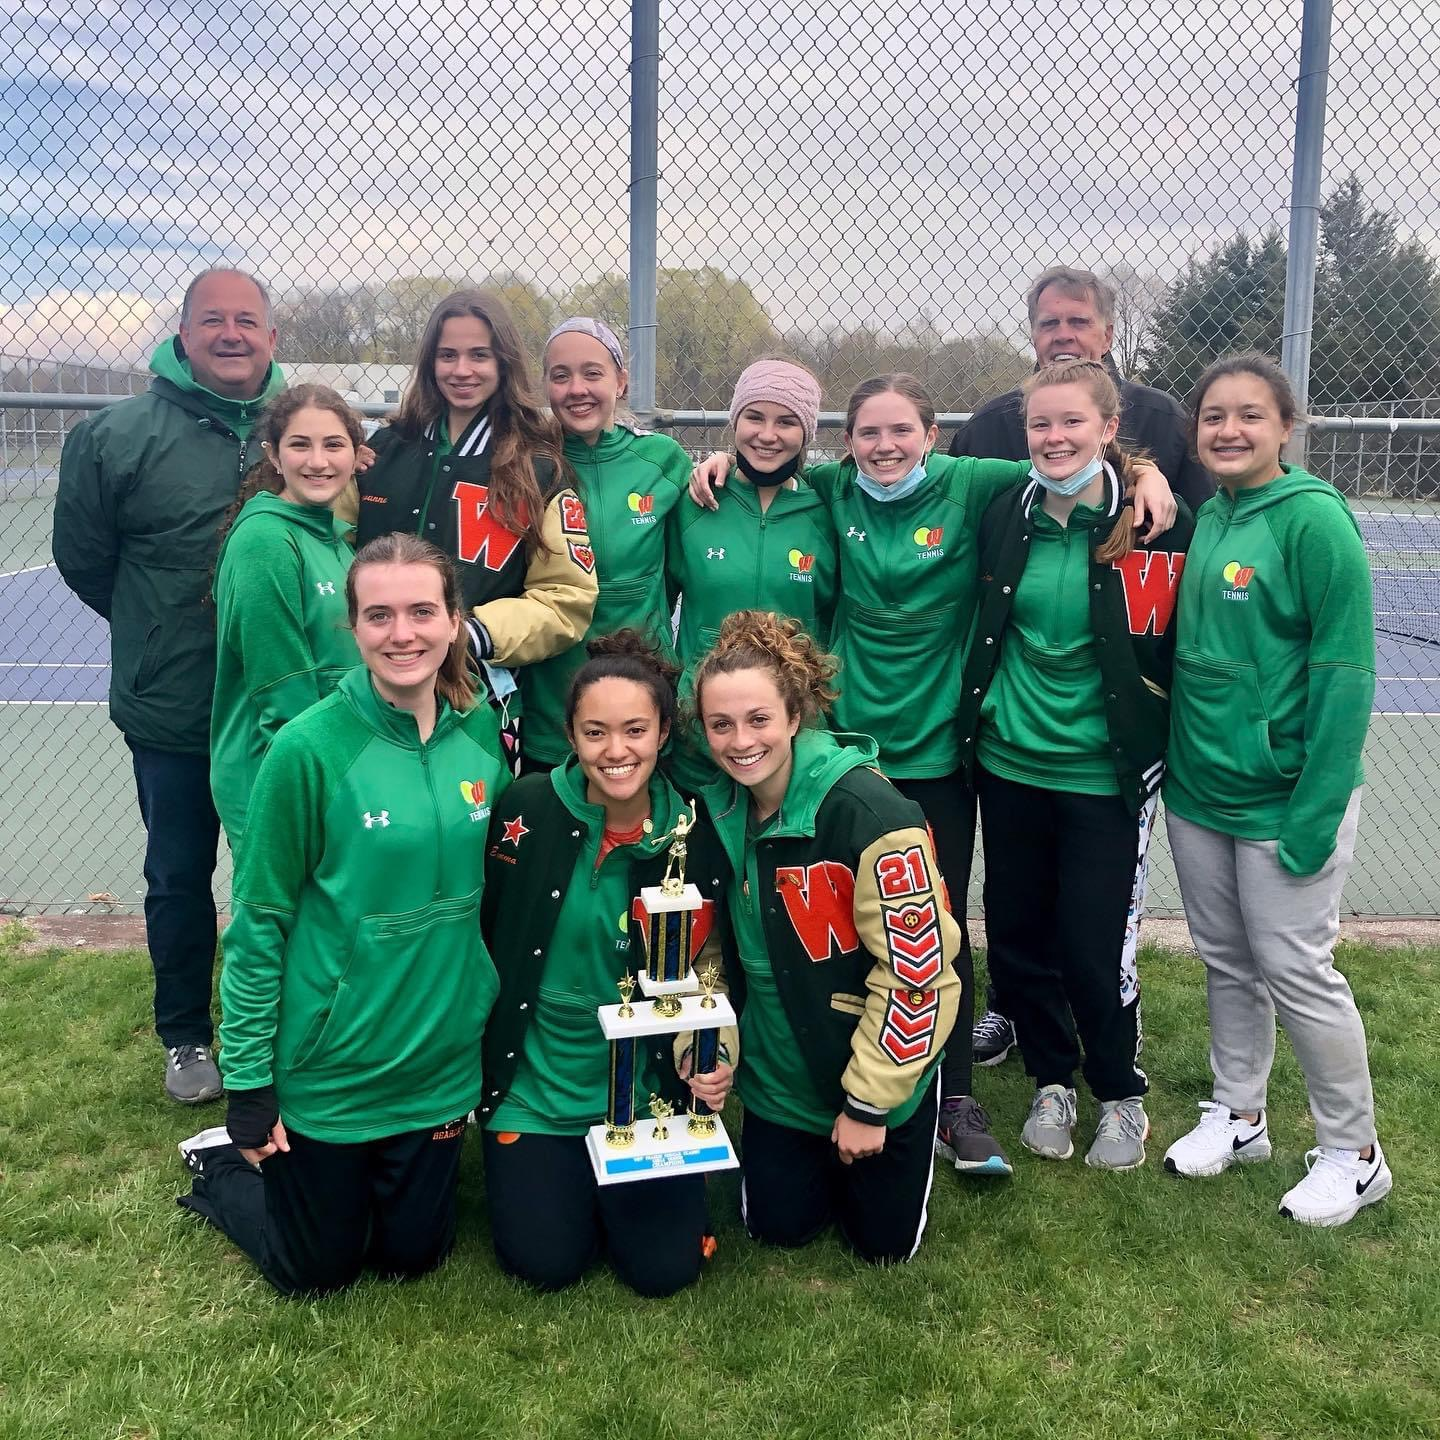 Congratulations to Our Girls Varsity Tennis team on their Championship win over the weekend!